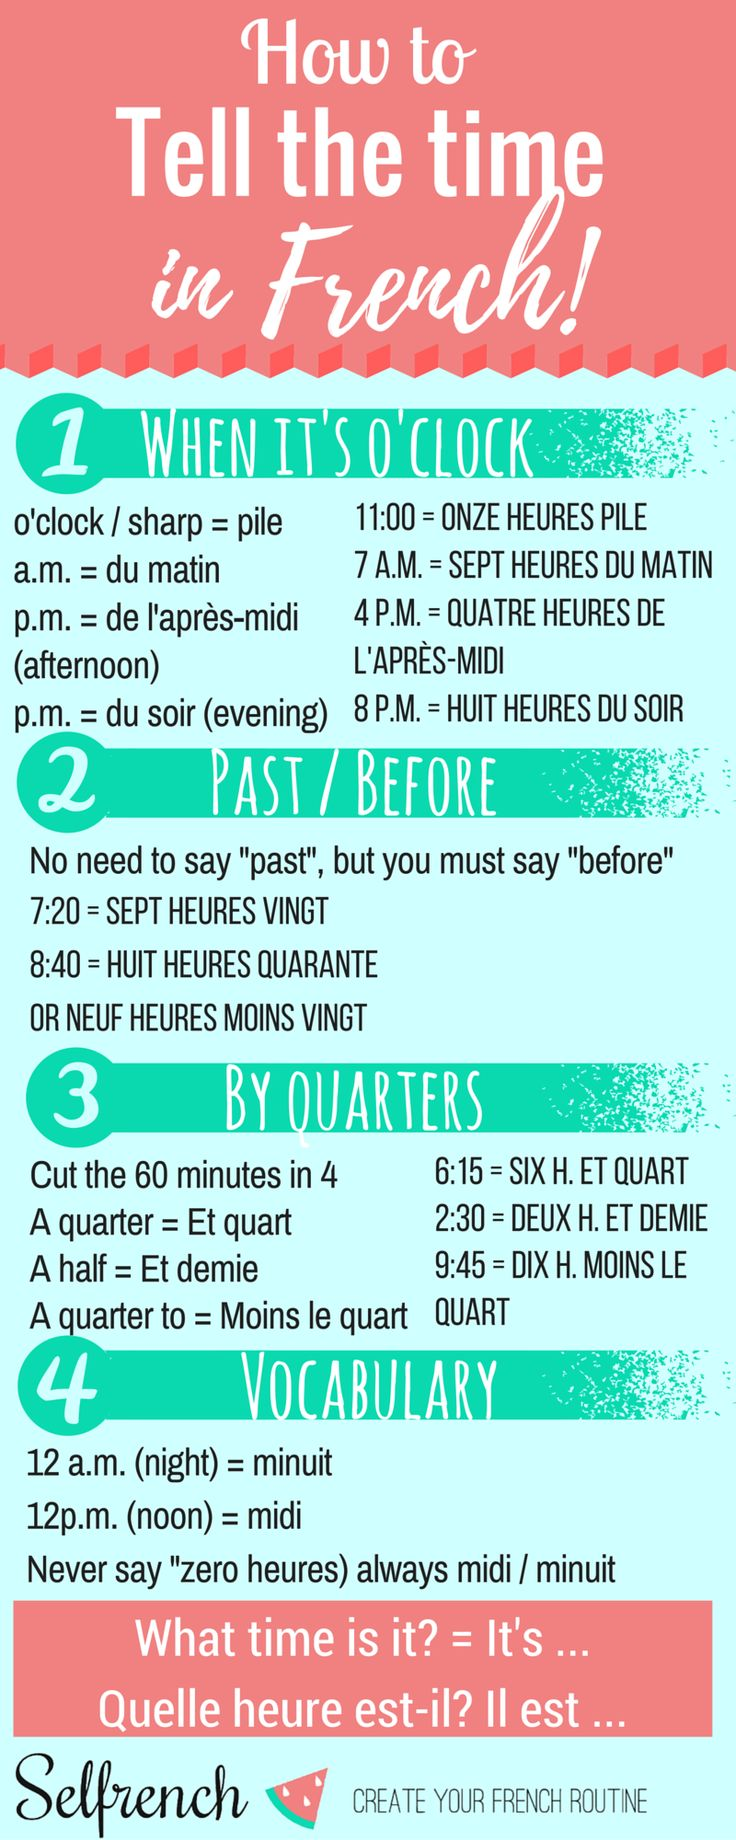 Infographic to learn how to tell the time in French